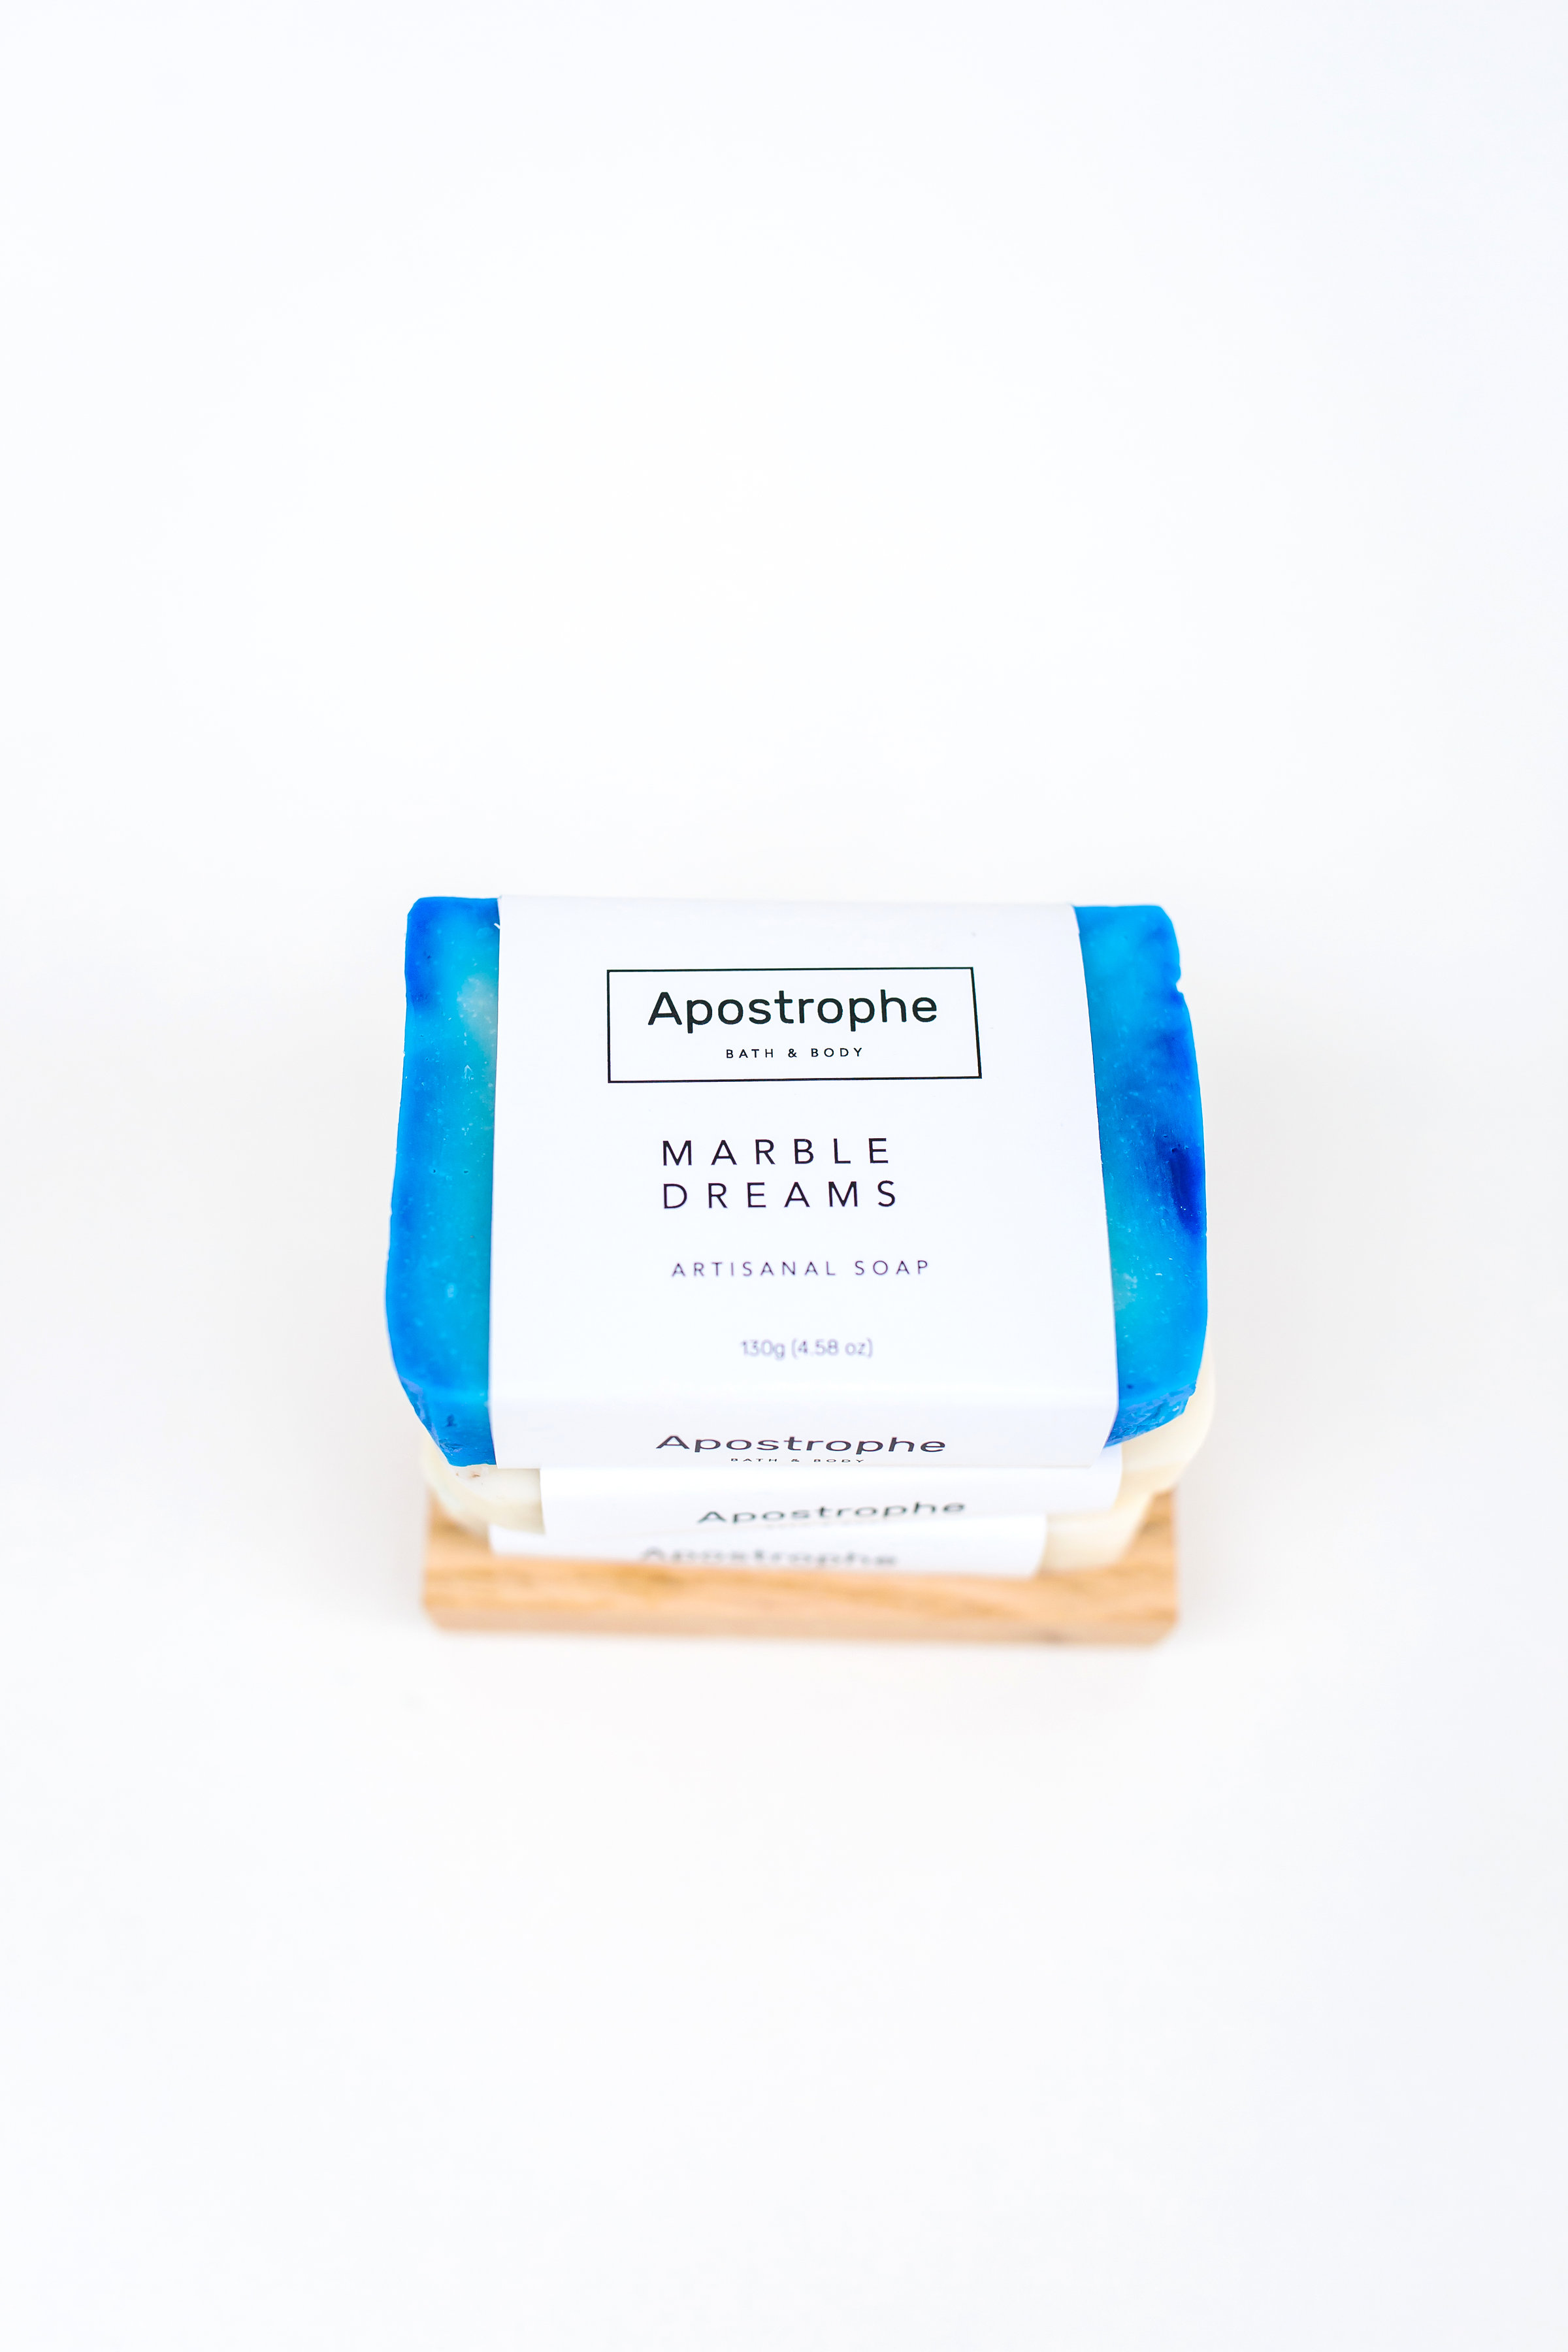 Lets get lost in another world with Marble Dreams, these bars are scented with pure Lemongrass Essential Oil which will leave you feeling envigorated and refreshed.They are made from a blend of fine plant based oils, essential oils and mica colourants, which provide gentle nourishment to the skin whilst also being perfectly cleansing. Did we mention that they are Vegan too? 